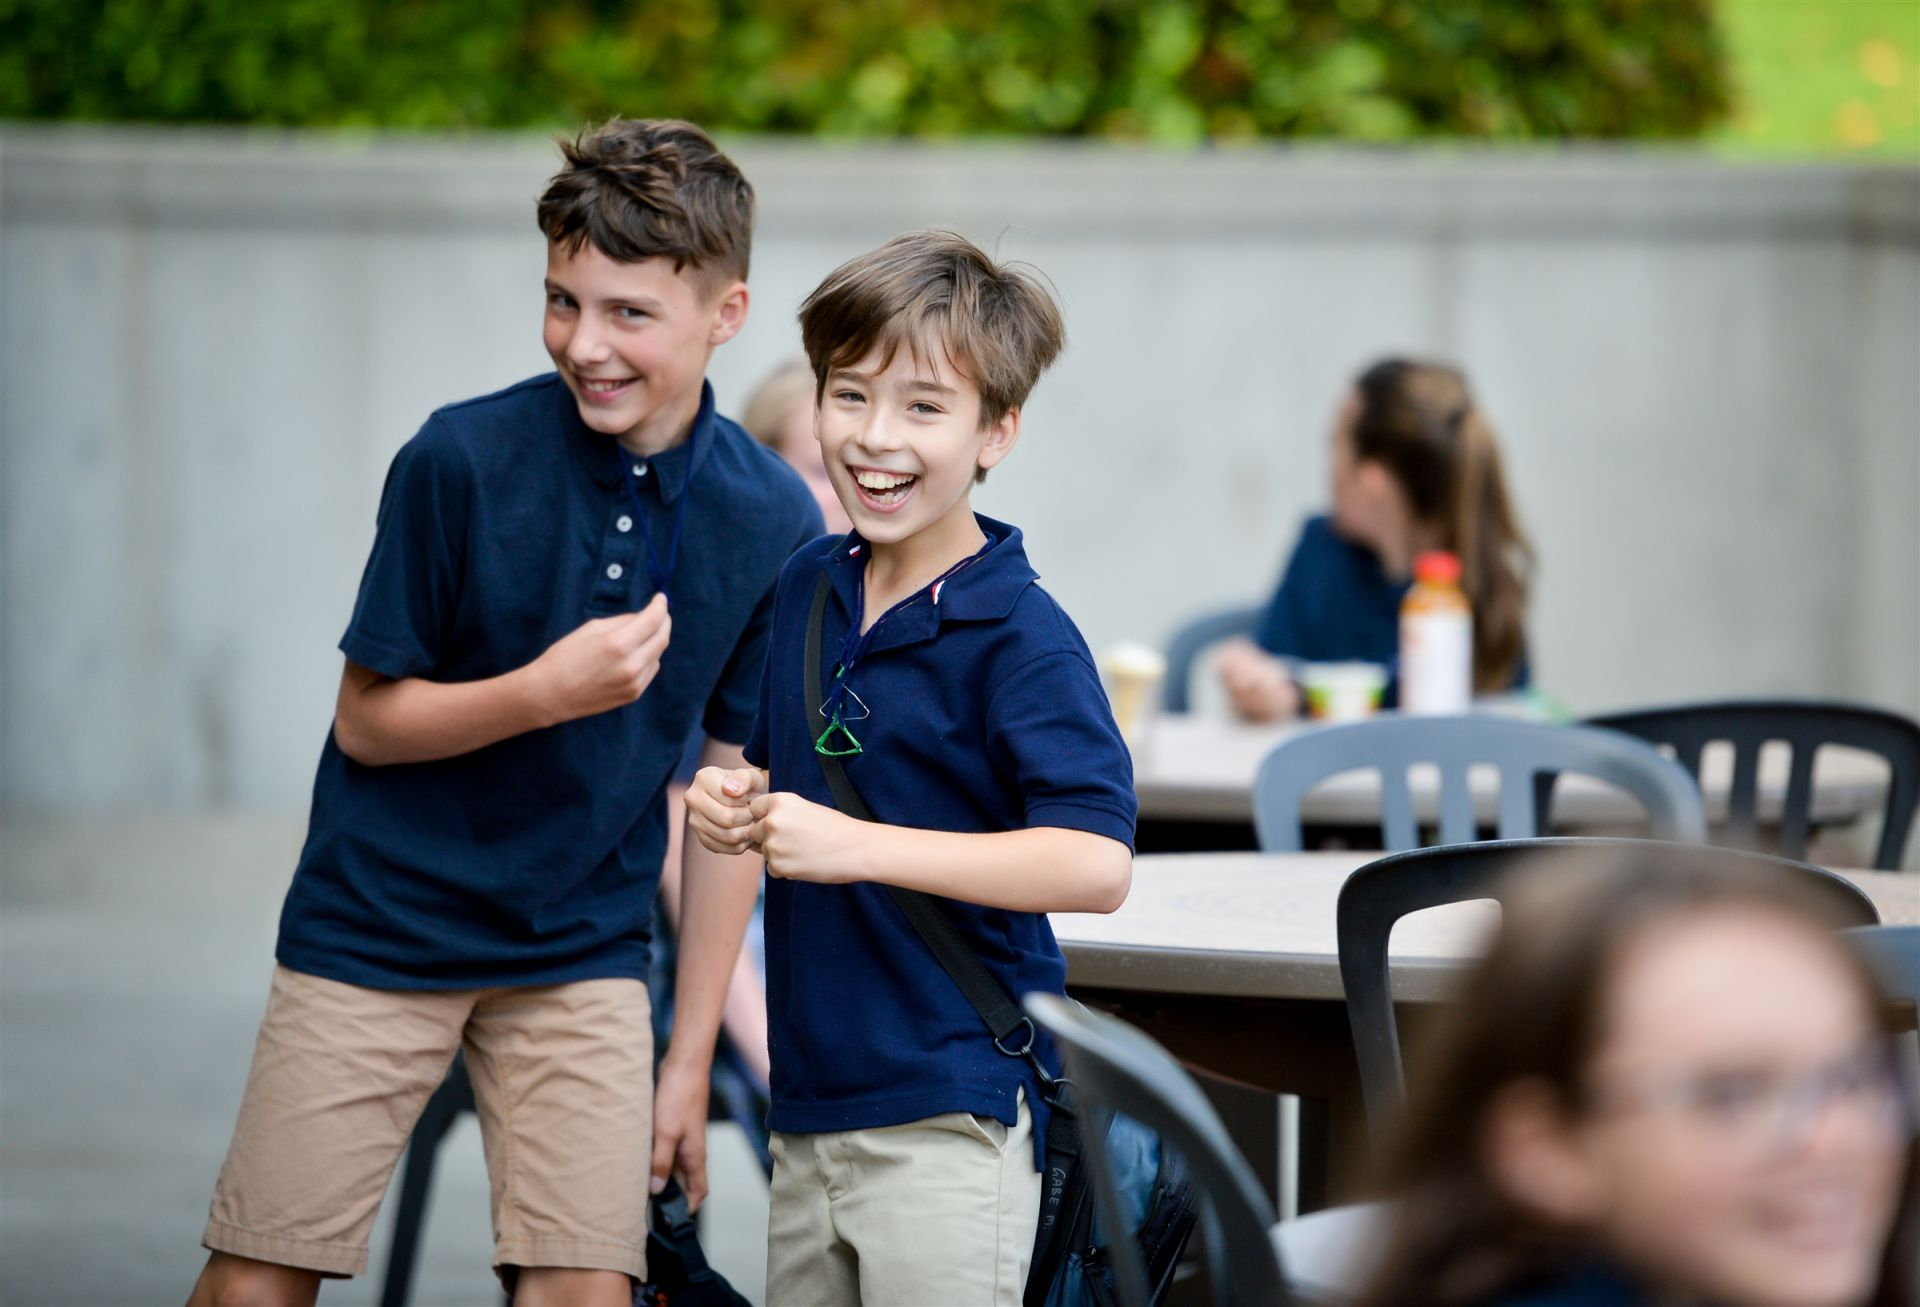 Students enjoy a cafe style dining experience in our outdoor spaces.